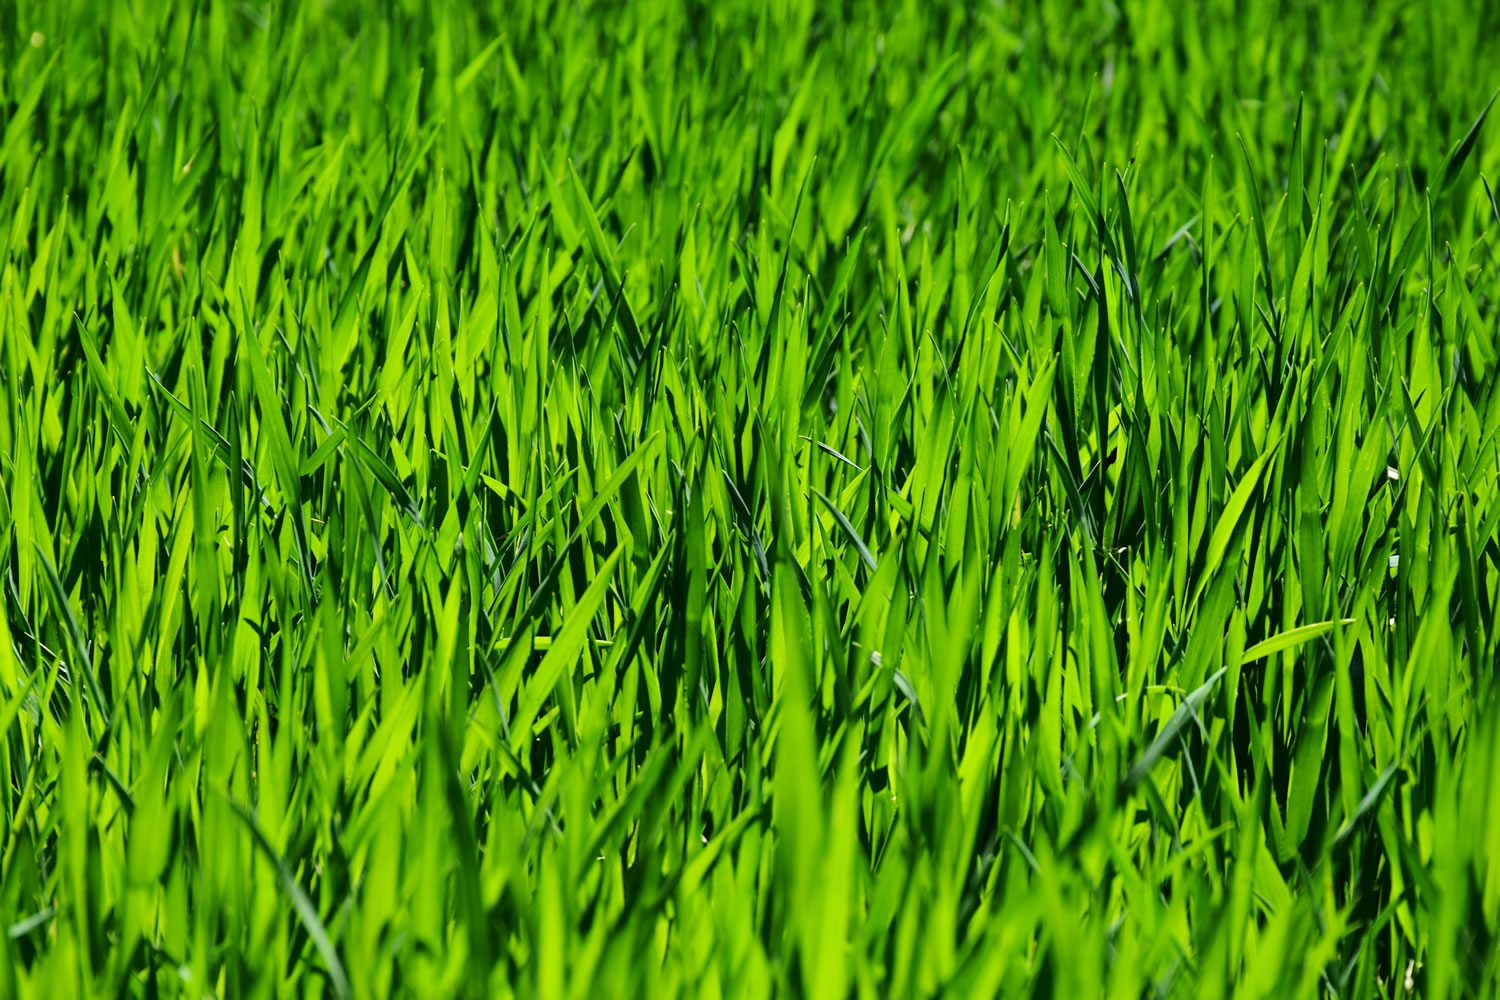 Green Grass Wallpaper Mural